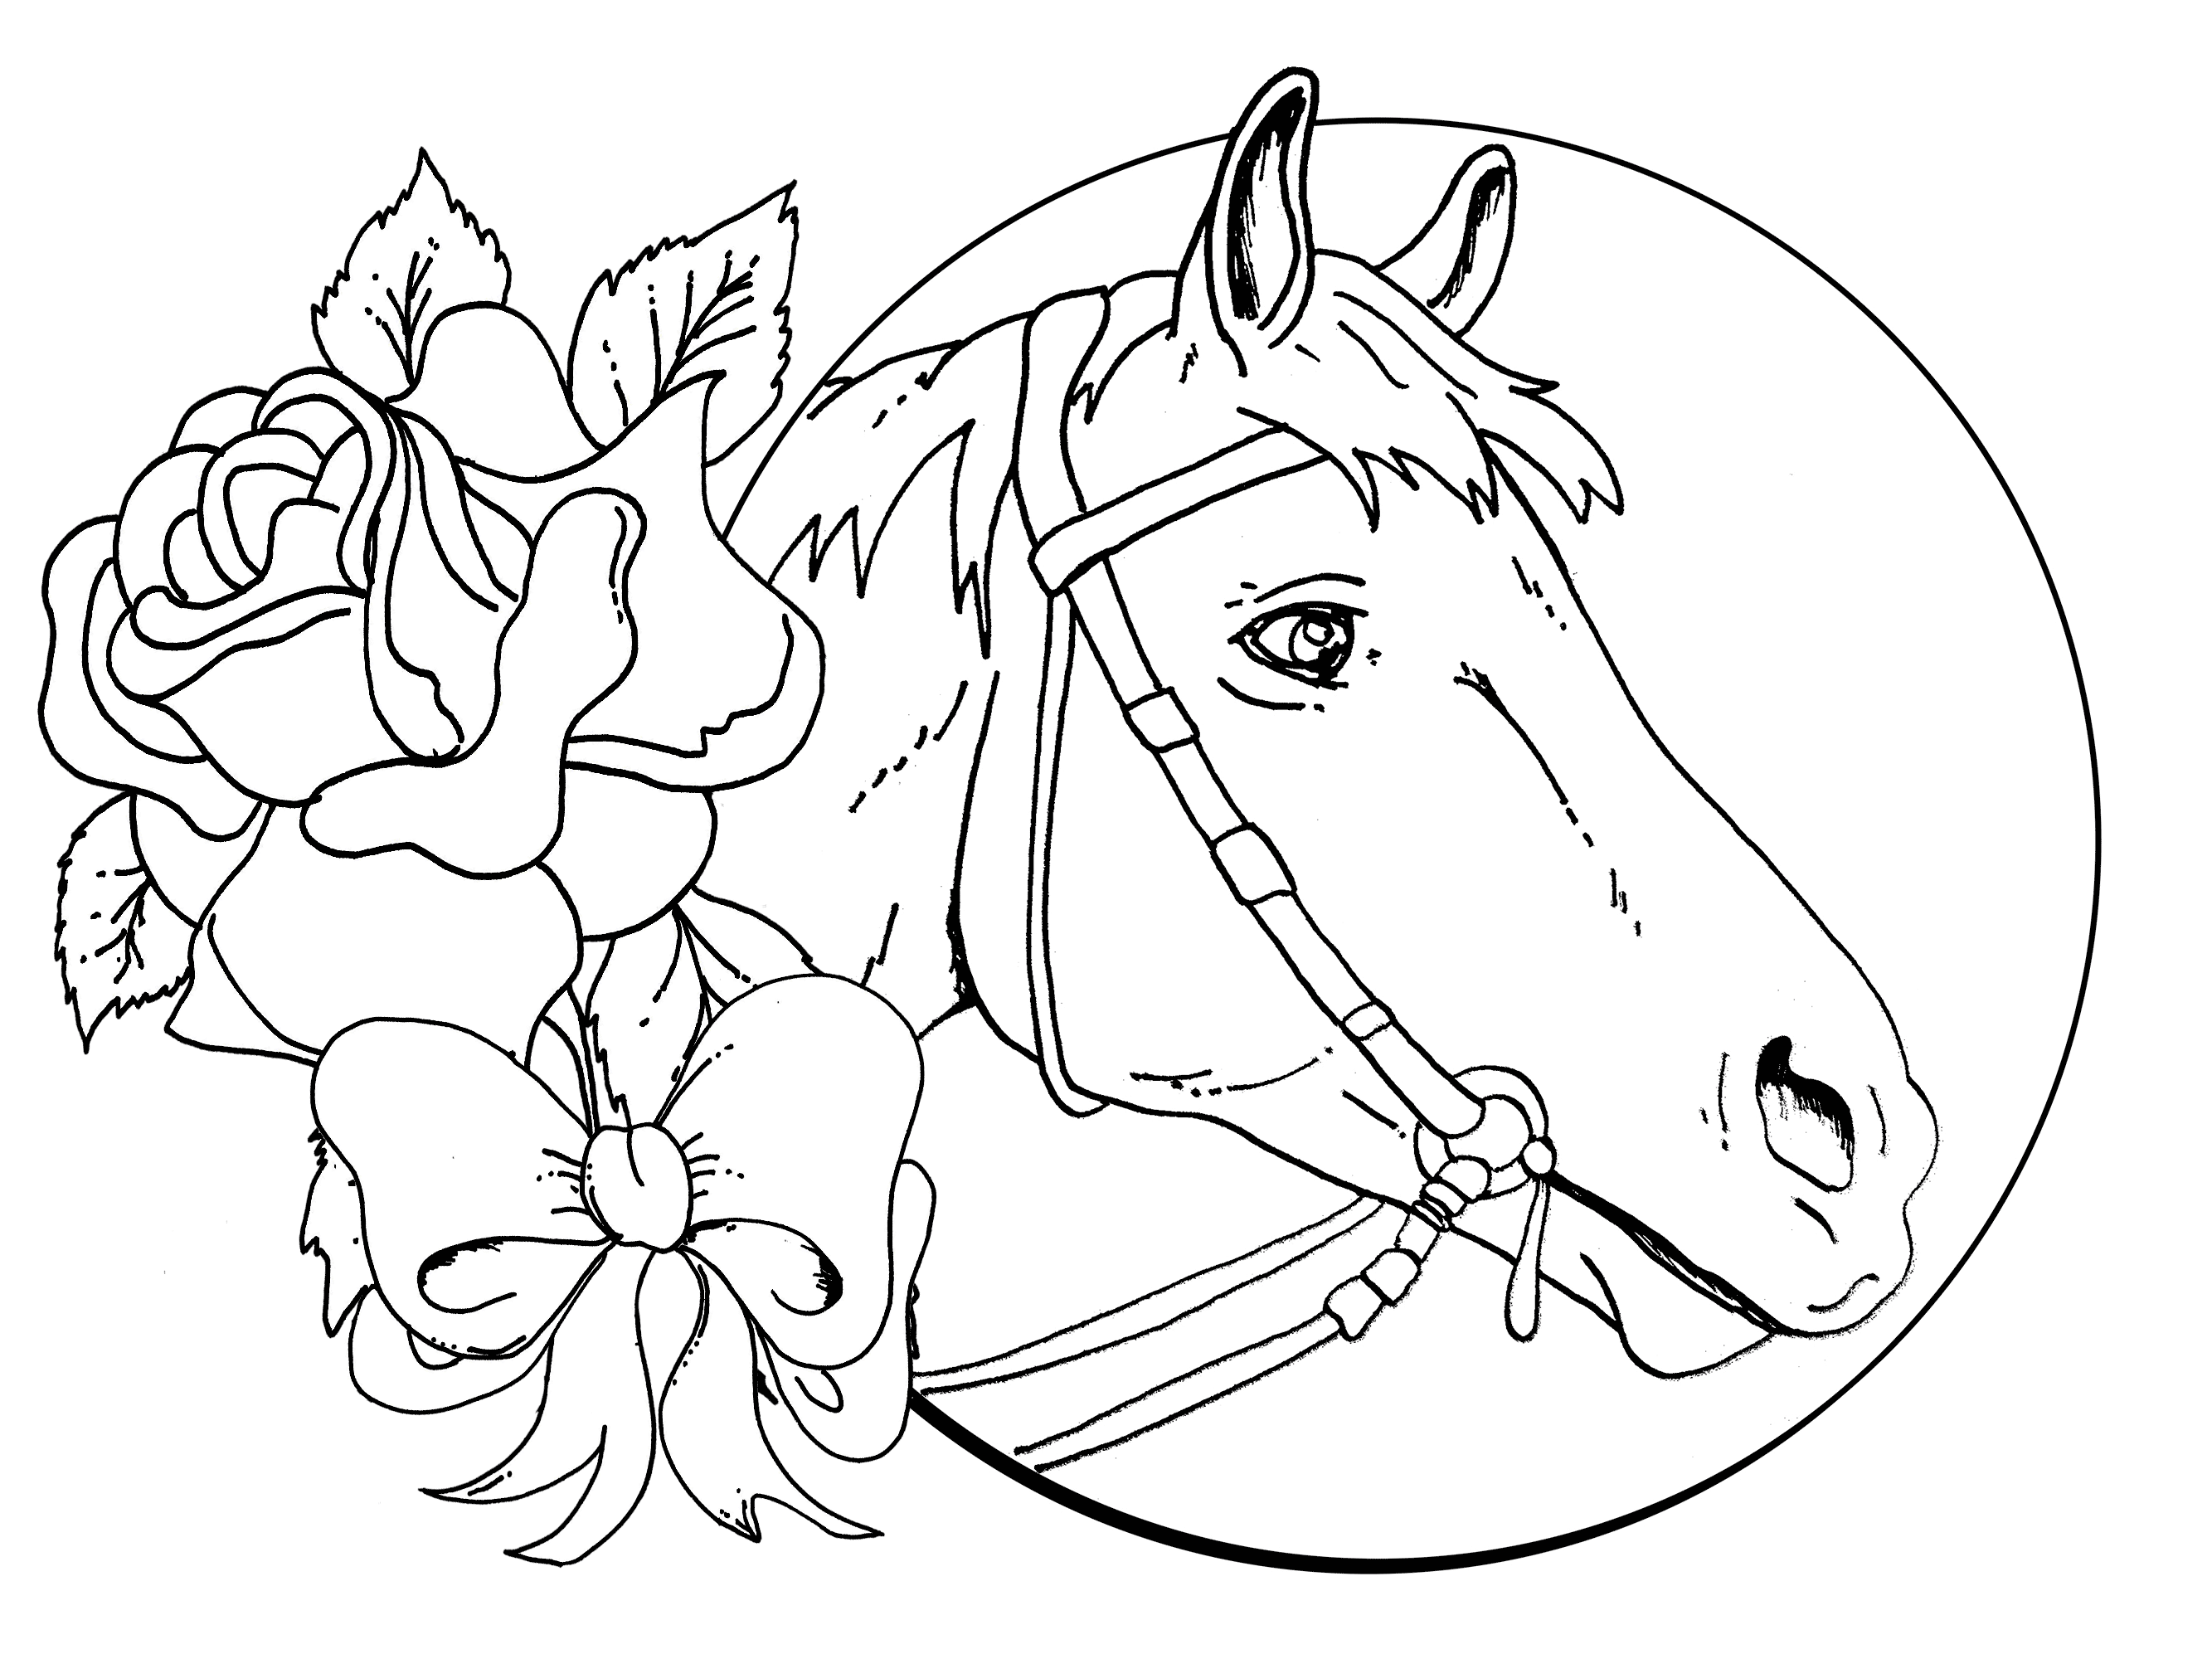 Coloring Pages for Girls Z31